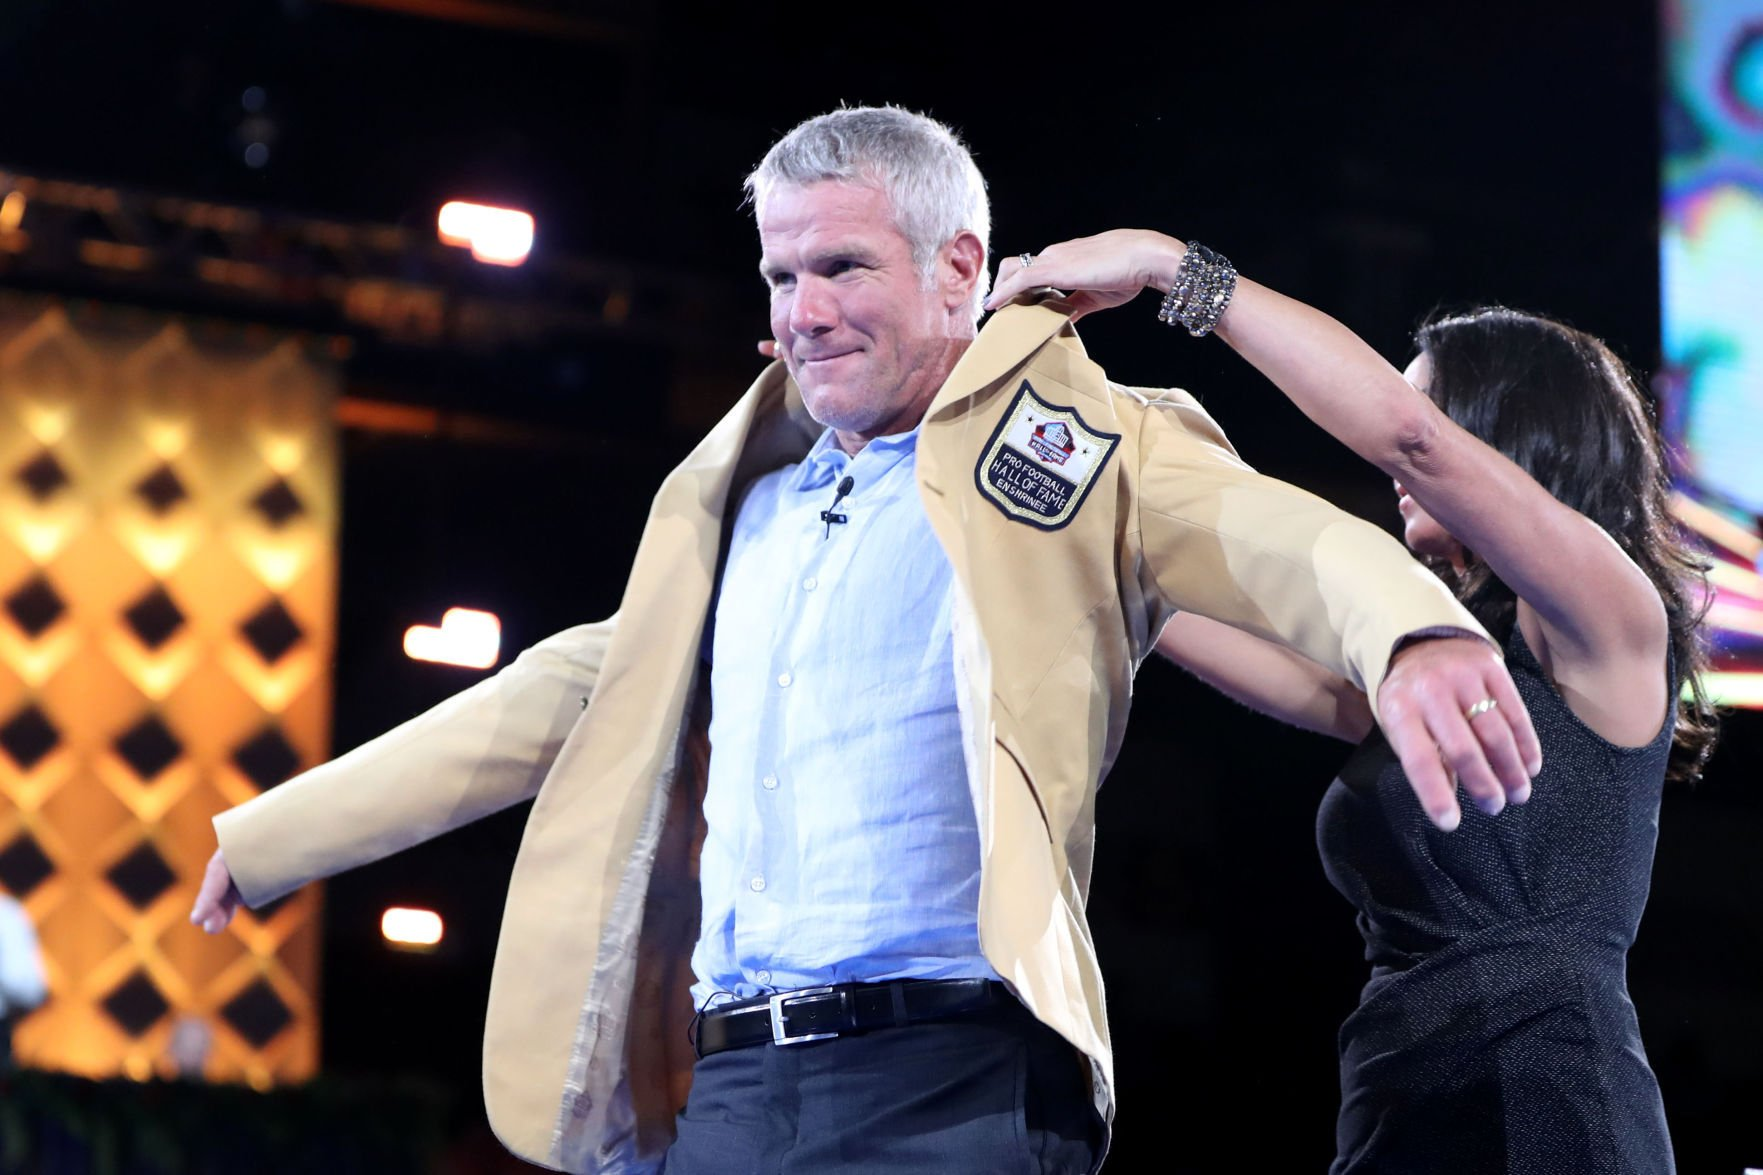 Brett Favre brings down the house with emotional, hilarious speech